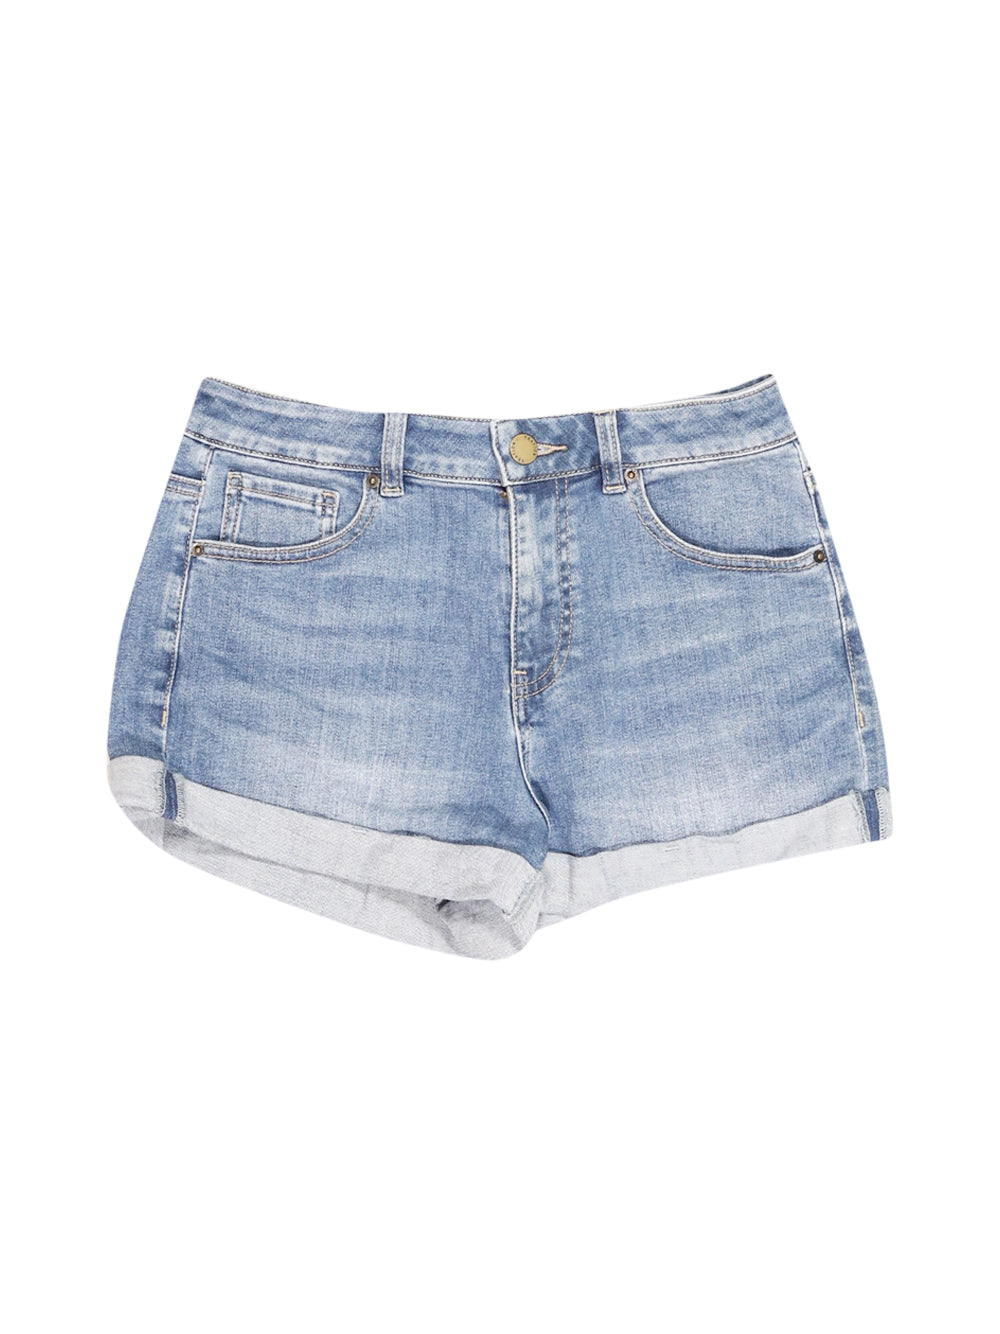 Front photo of Preloved yeation Blue Woman's shorts - size 8/S